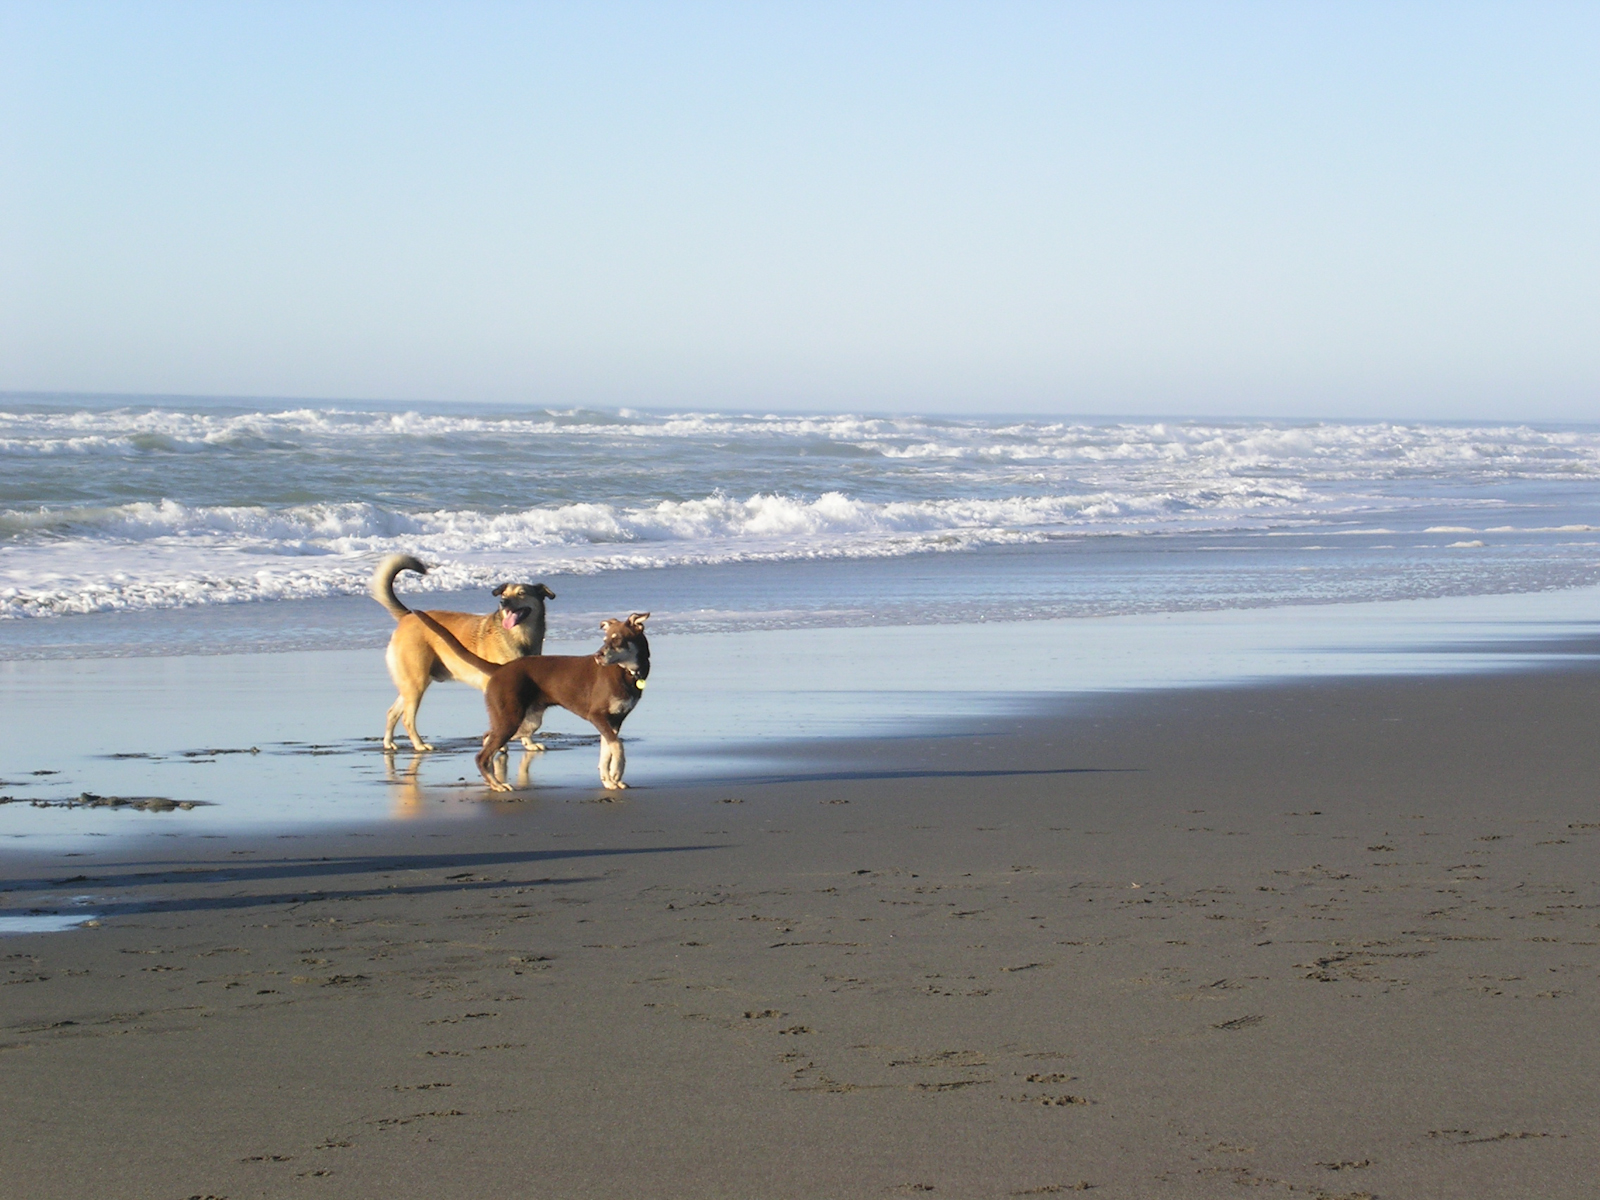 rudy-stella-running-on-the-beach